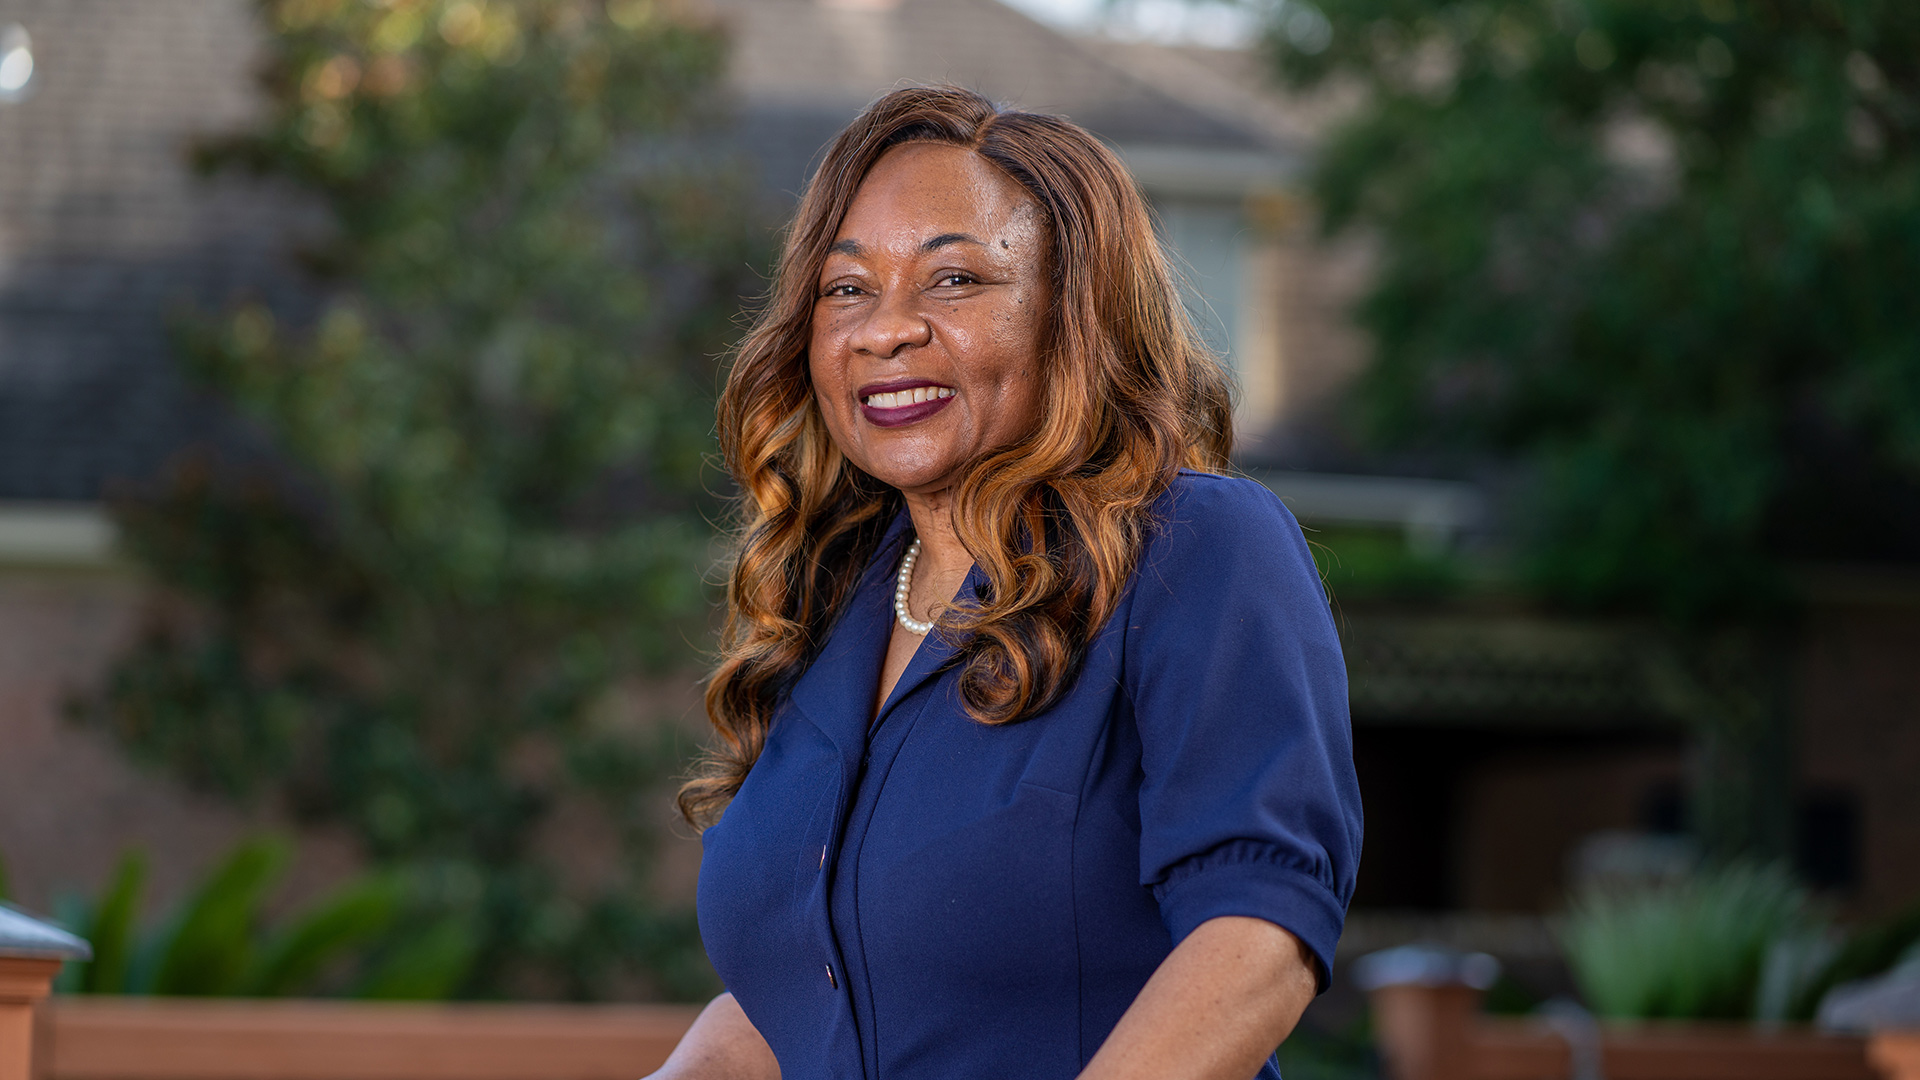 Catherine Coleman Flowers Joins President Pines on Sept. 27 To Discuss Effects of Environmental Inequality